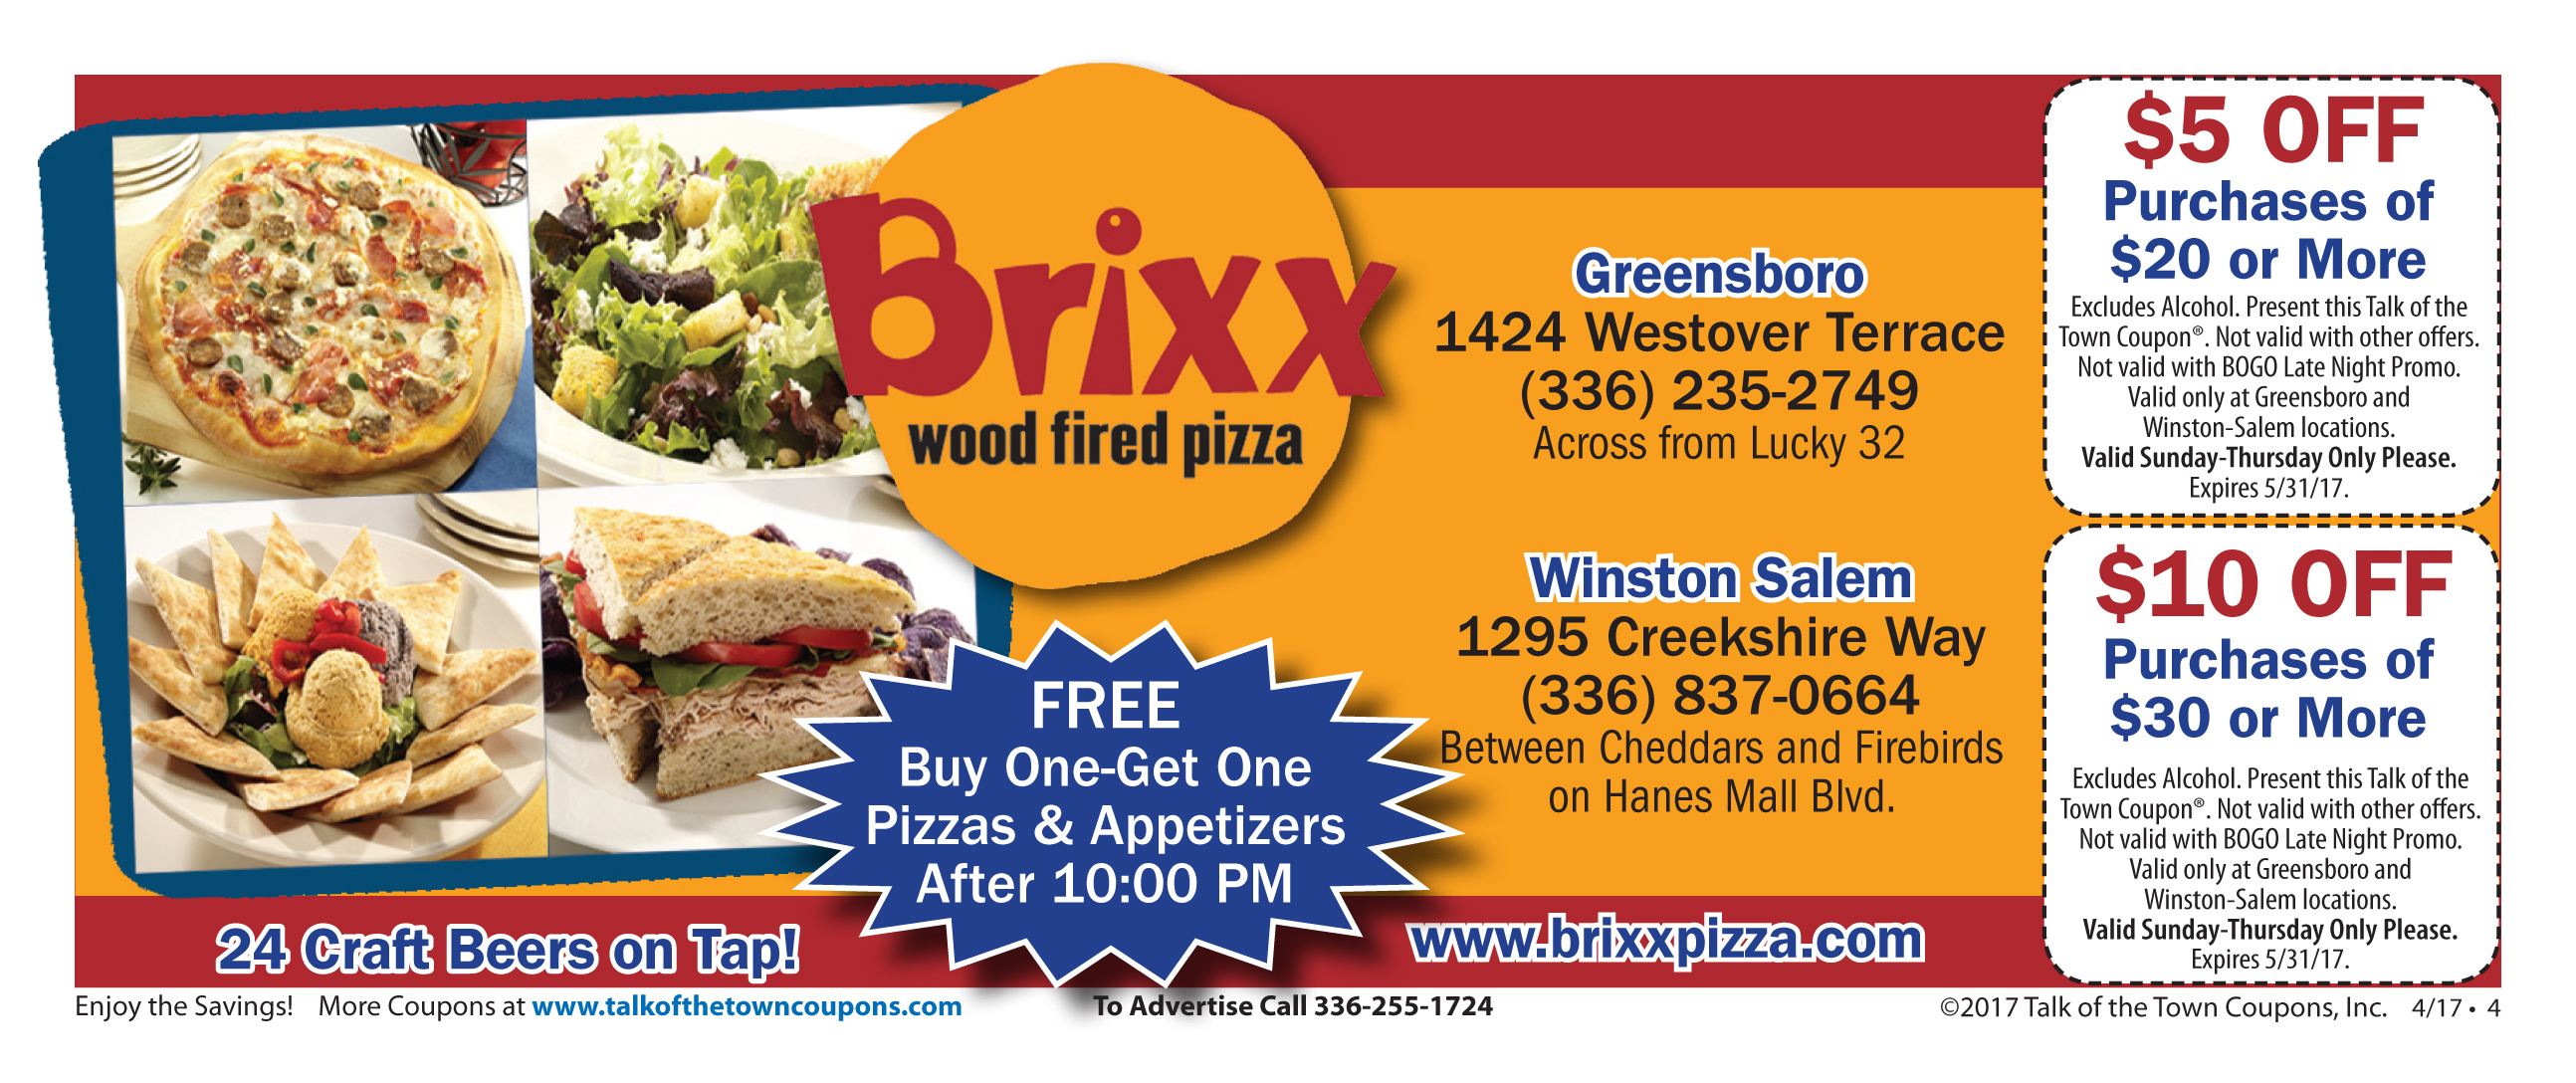 Brixx Wood Fired Pizza Booklet Offer Image